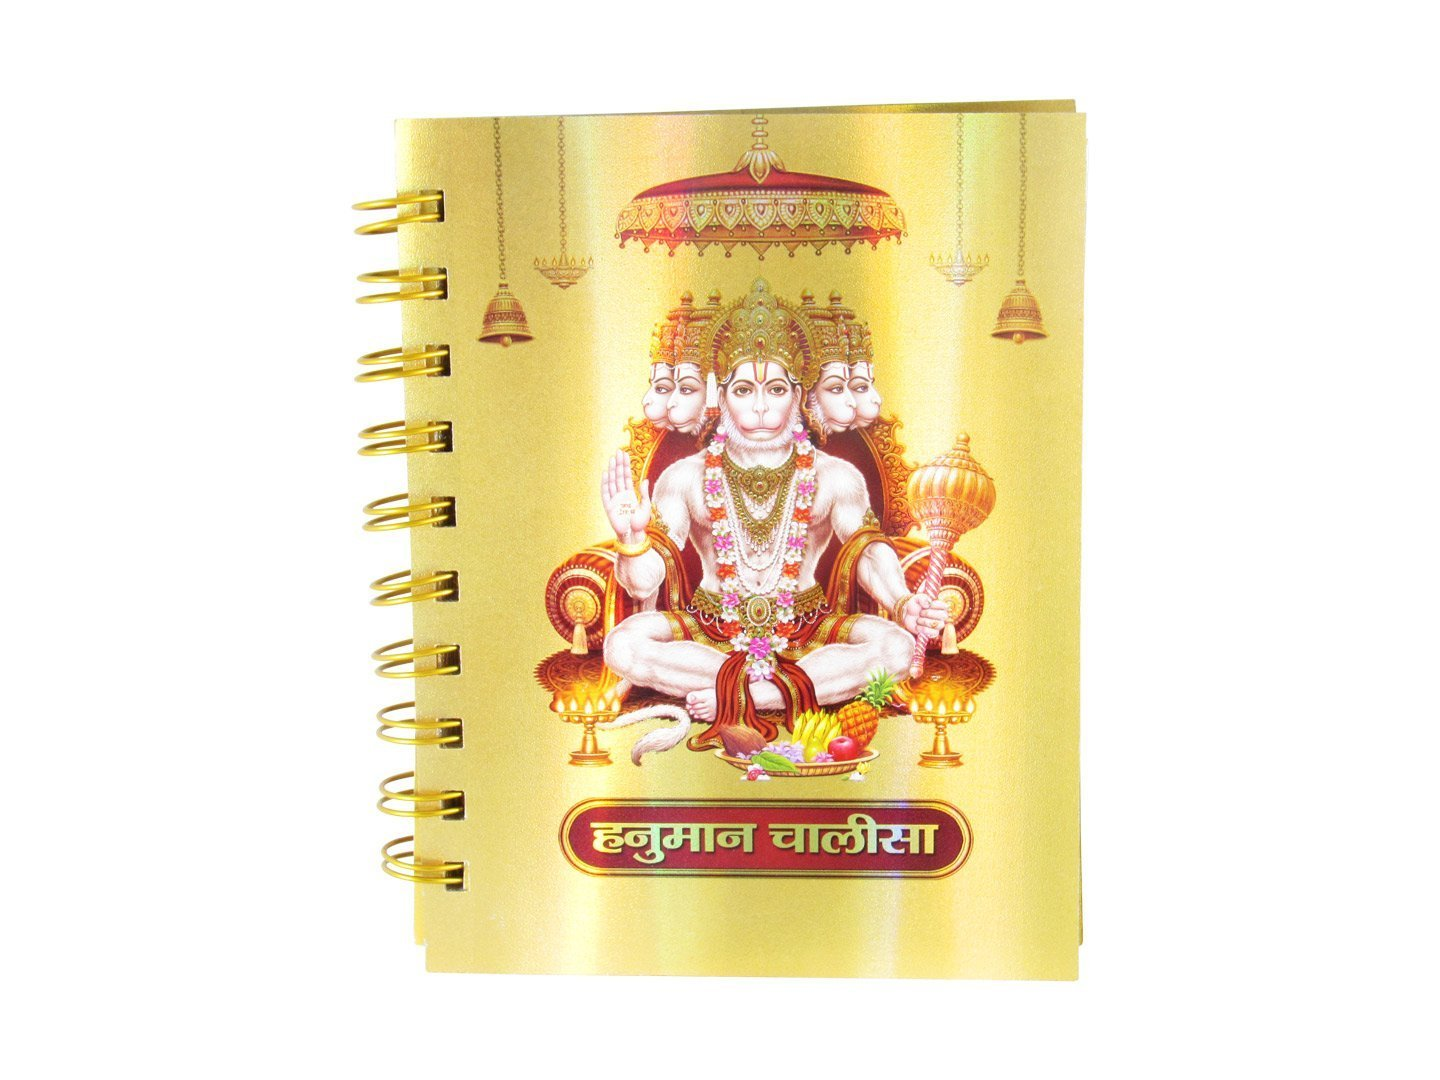 Nobility 24K Gold Plated Hanuman Chalisa Book by Nobility (Image #1)